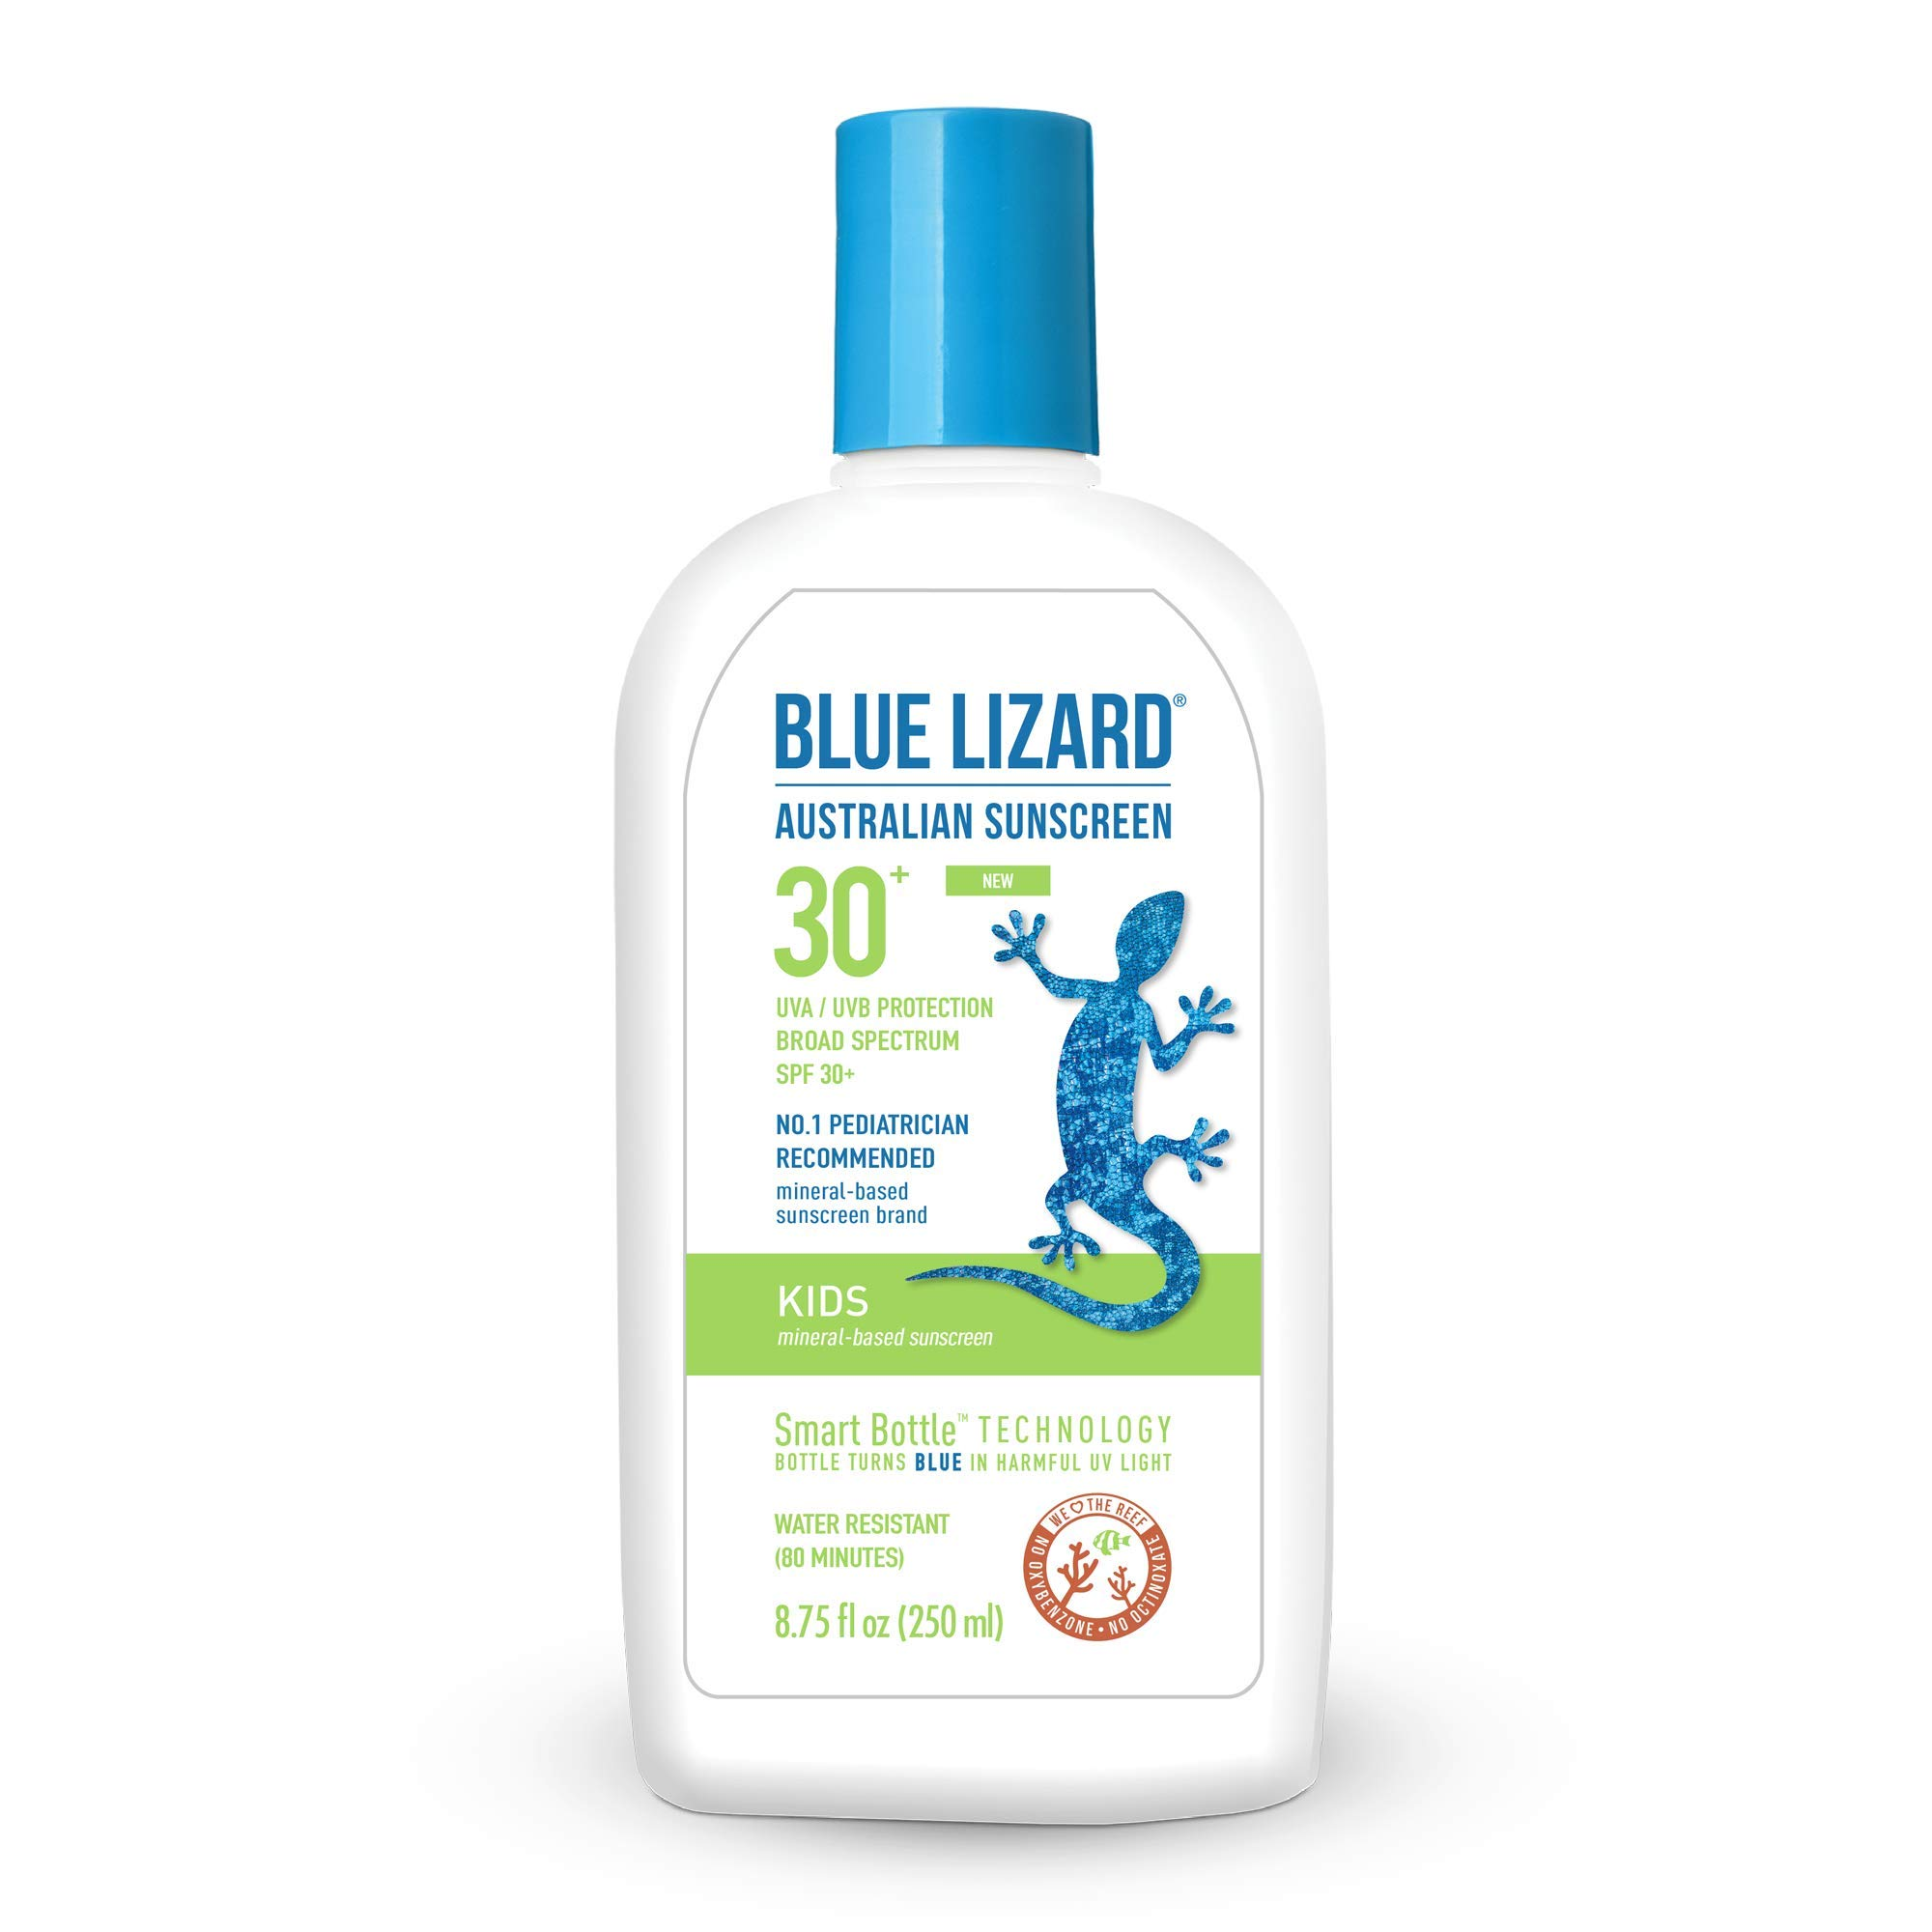 Blue Lizard Kids Mineral Sunscreen with No Chemical Ingredients SPF 30 UVA/UVB Protection, 8.75 oz Bottle